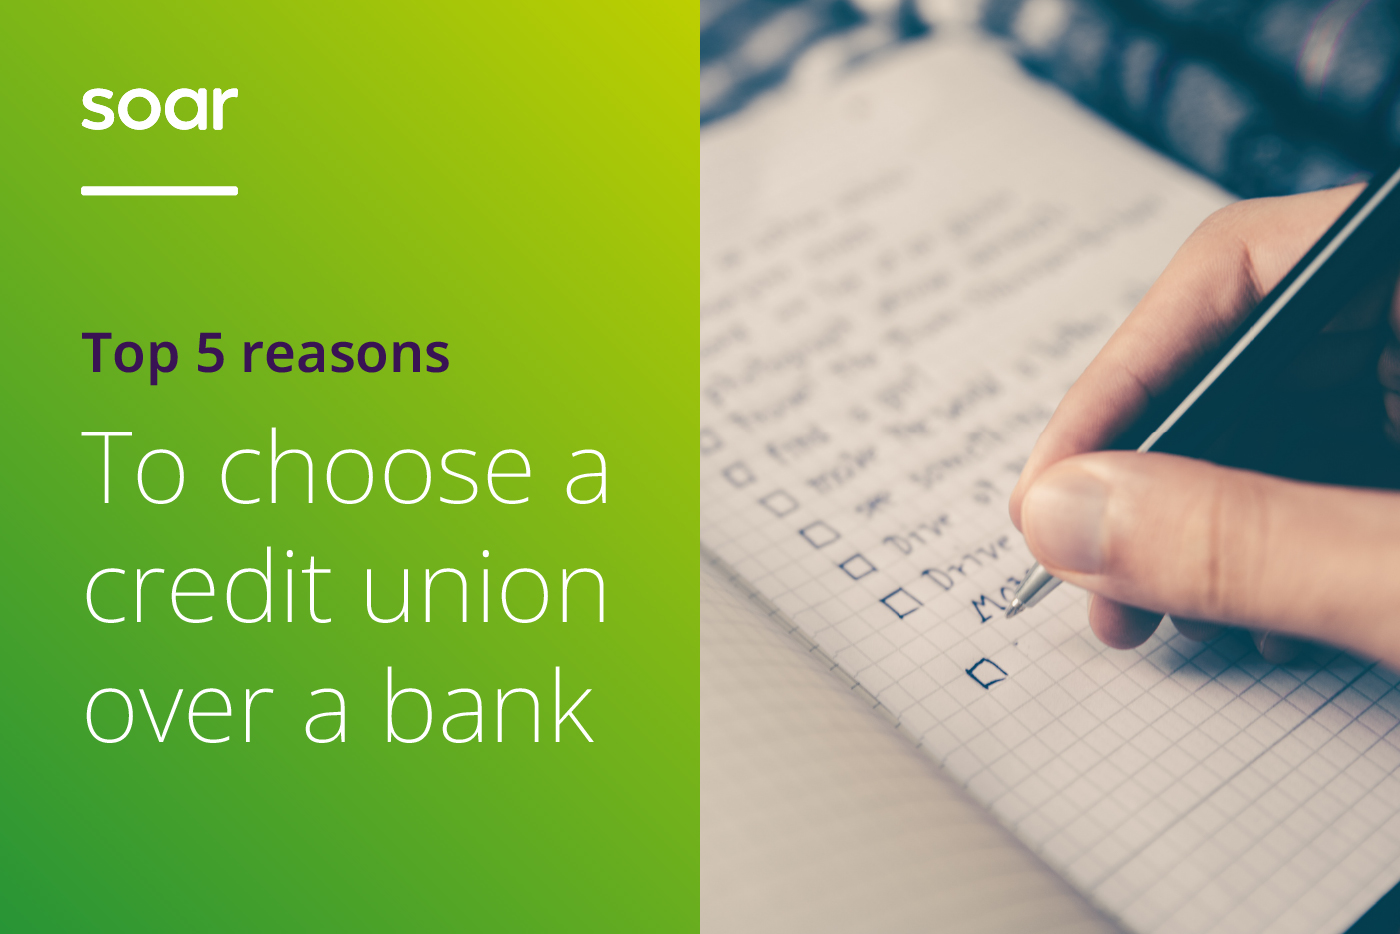 Top 5 reasons to choose a credit union over a bank